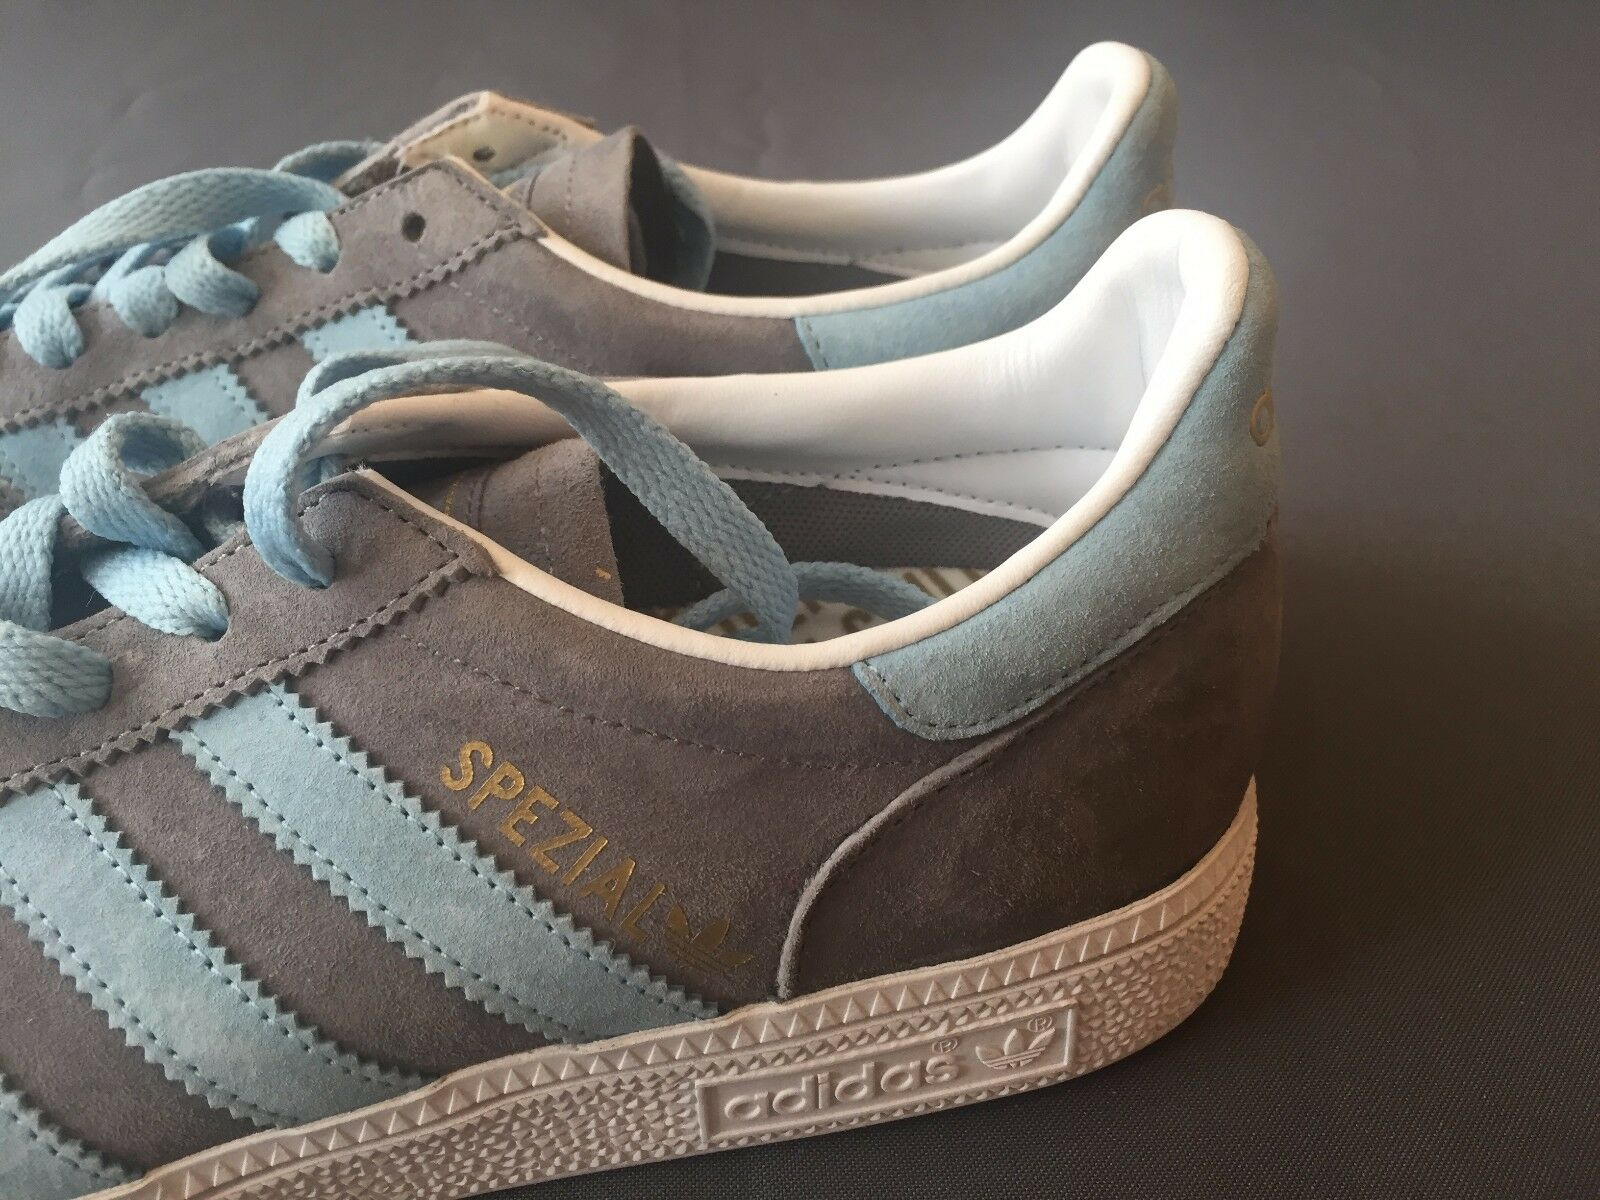 5+ 5 ADIDAS BB6094 Spezial Spezial Spezial Suede Trainers ORIGINALS shoes Sneakers Womens dafb90